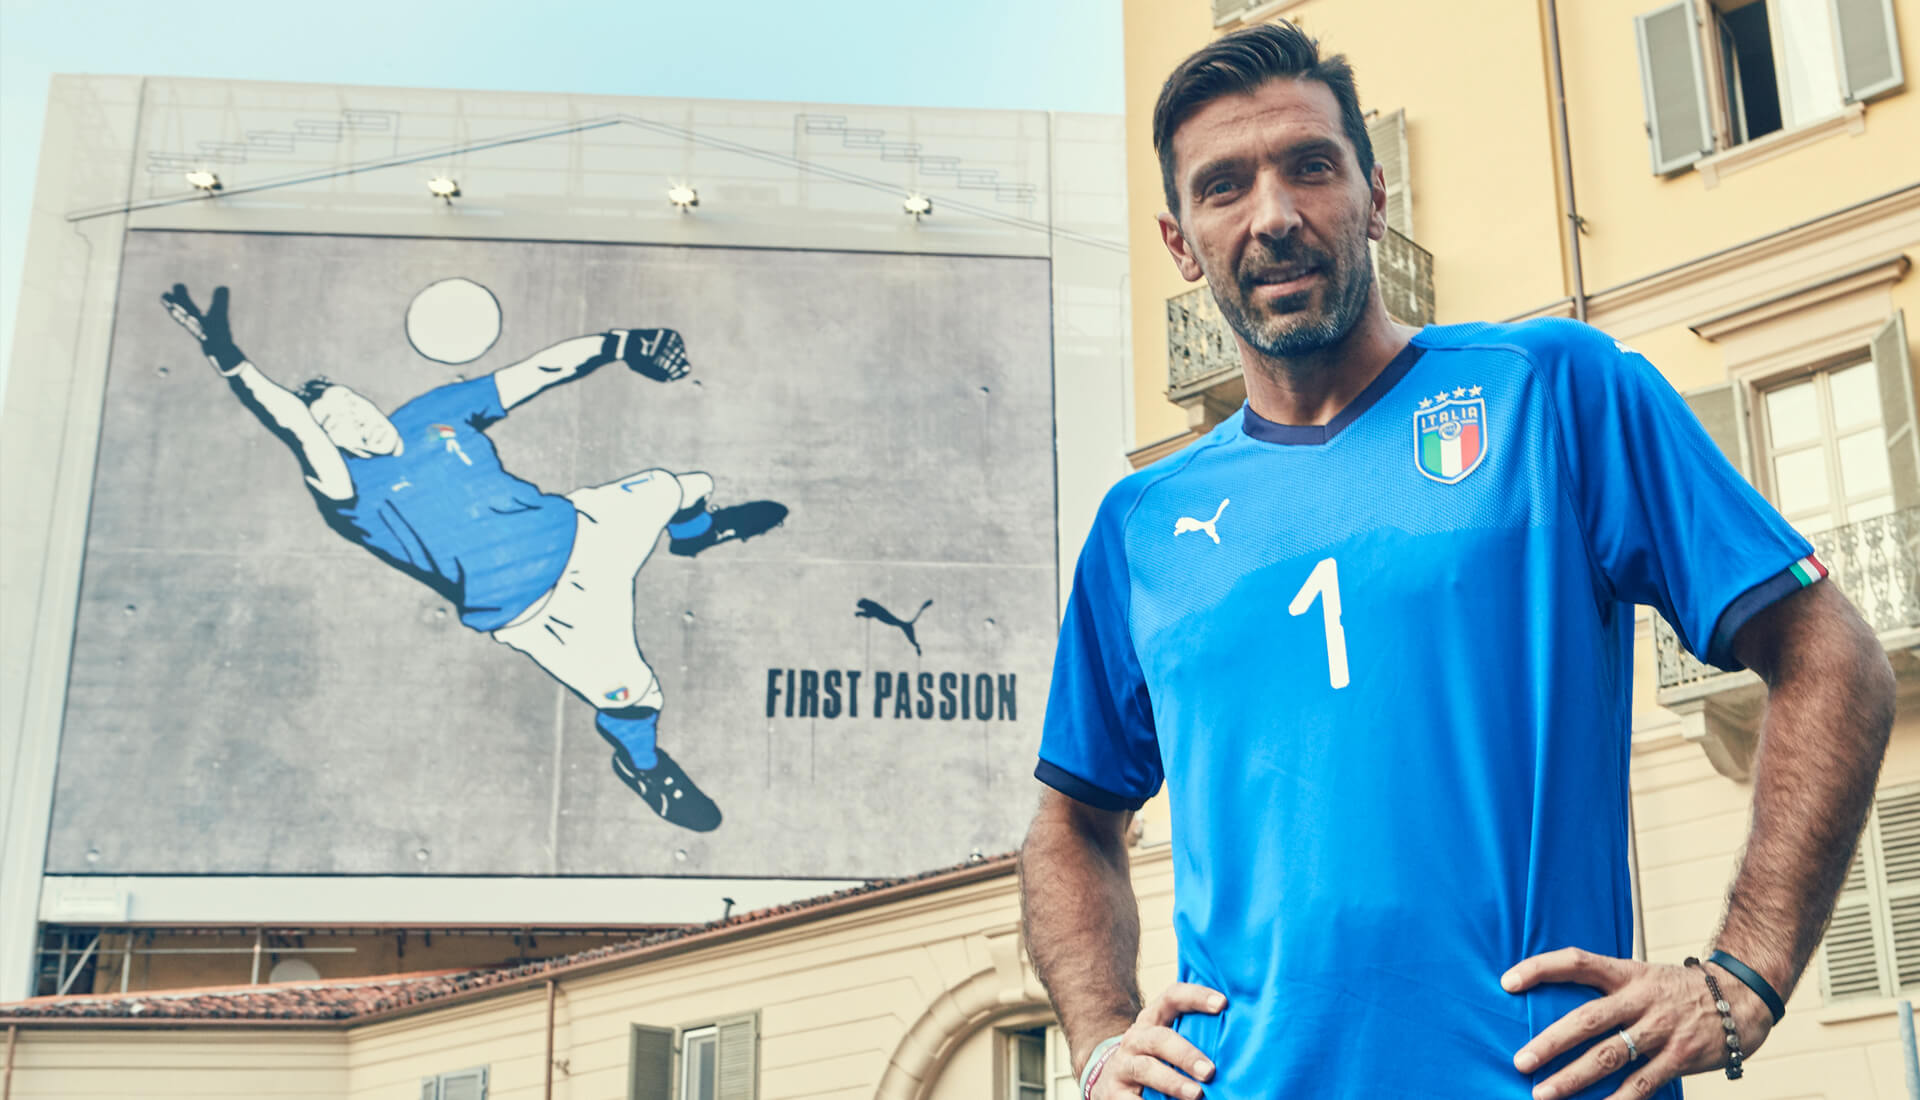 c120649bb8f Gigi Buffon To Wear 2018 Italy Home Shirt - SoccerBible.